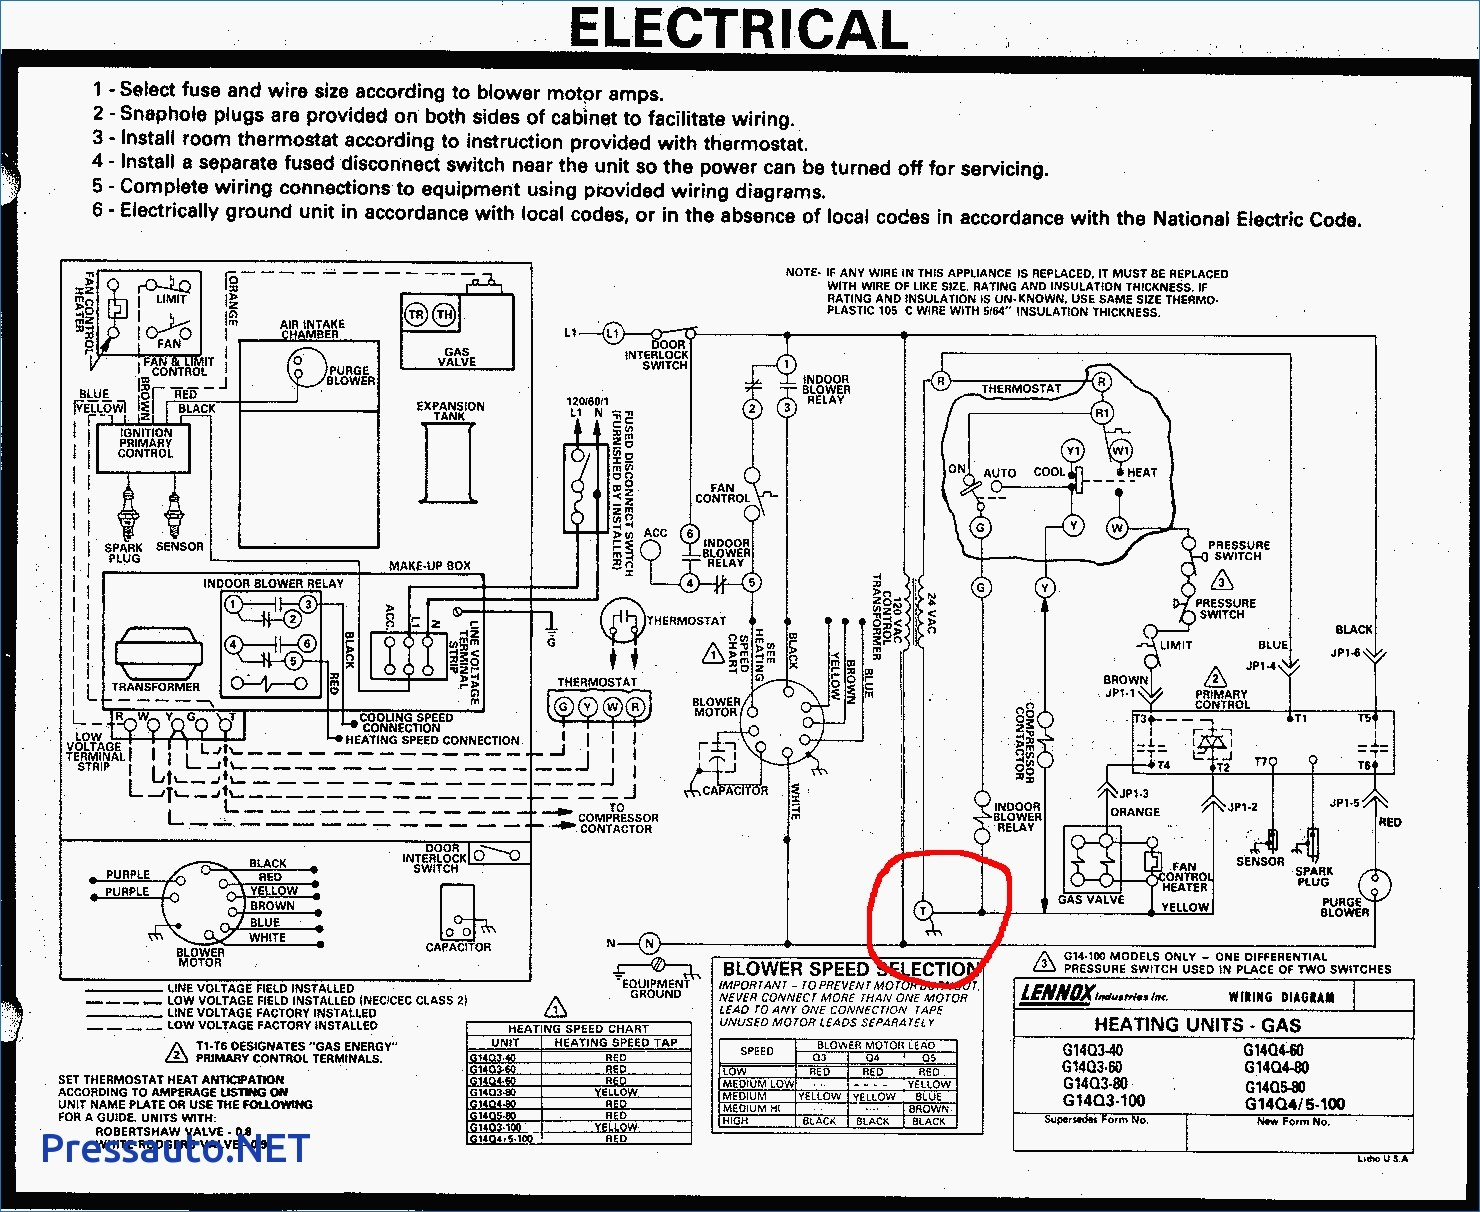 Rheem Heat Pump Wiring Diagram | Manual E-Books - Rheem Heat Pump Wiring Diagram